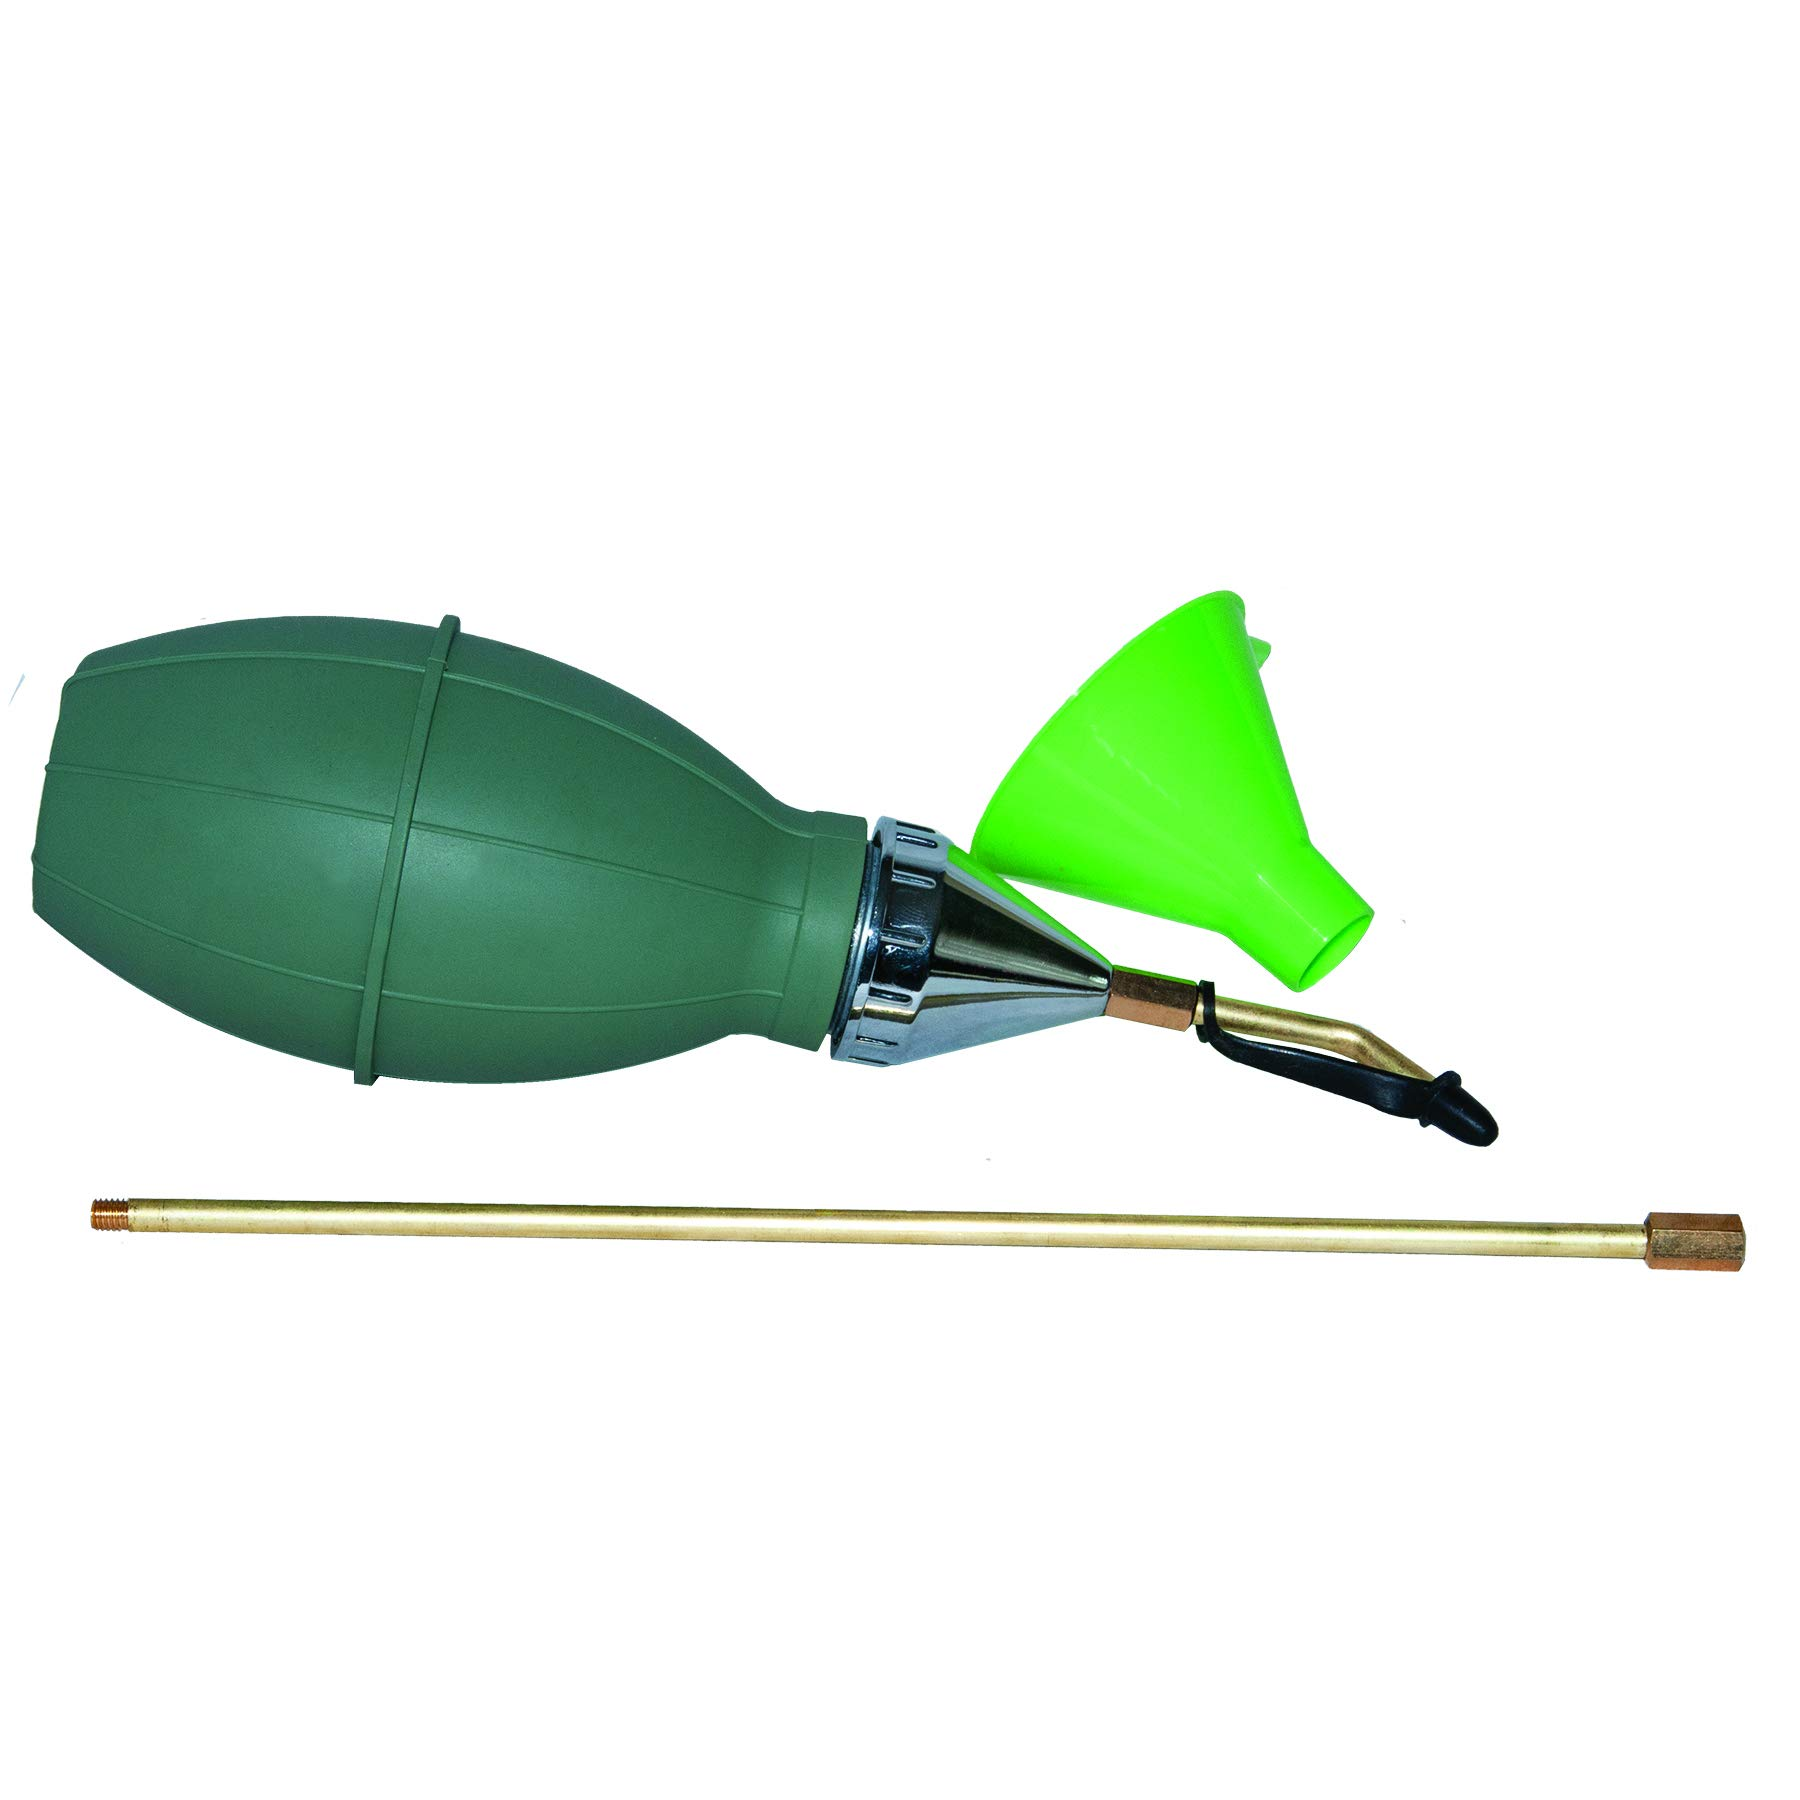 Puff-D 512 Puffy-D Bulb Insecticidal Duster, Green by Puff-D